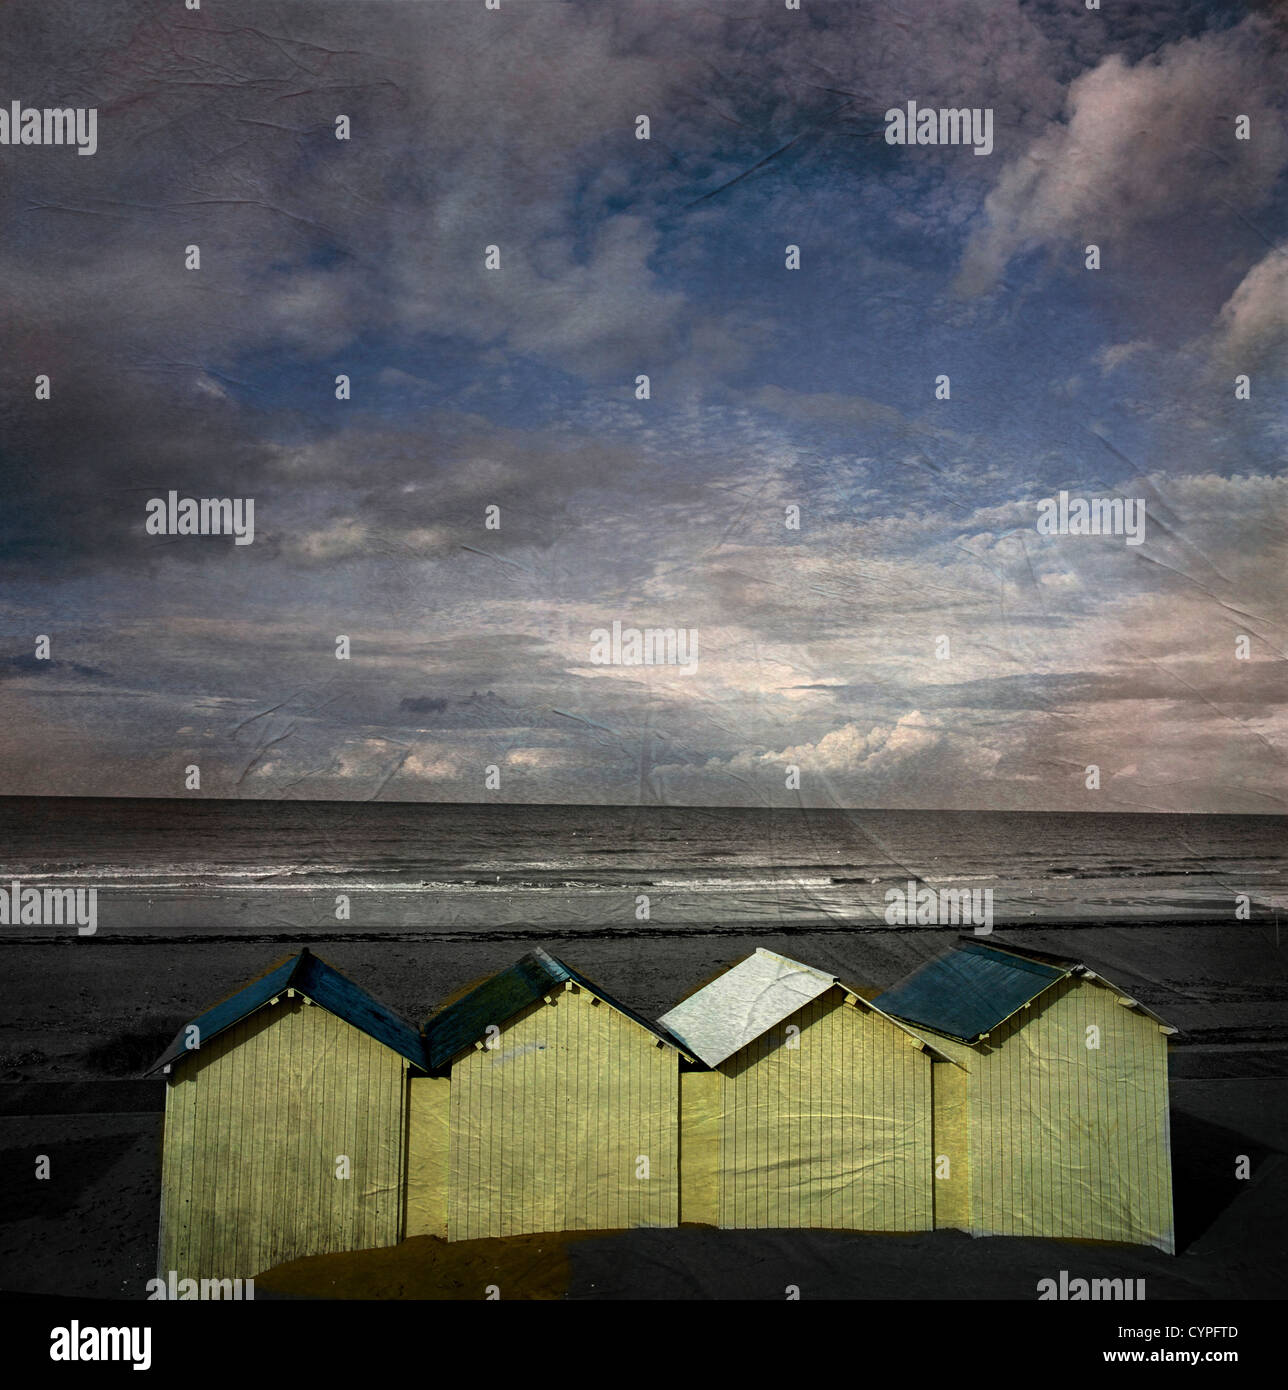 Beach huts under a stormy sky, vintage-look, Normandy, France, Europe. Stock Photo